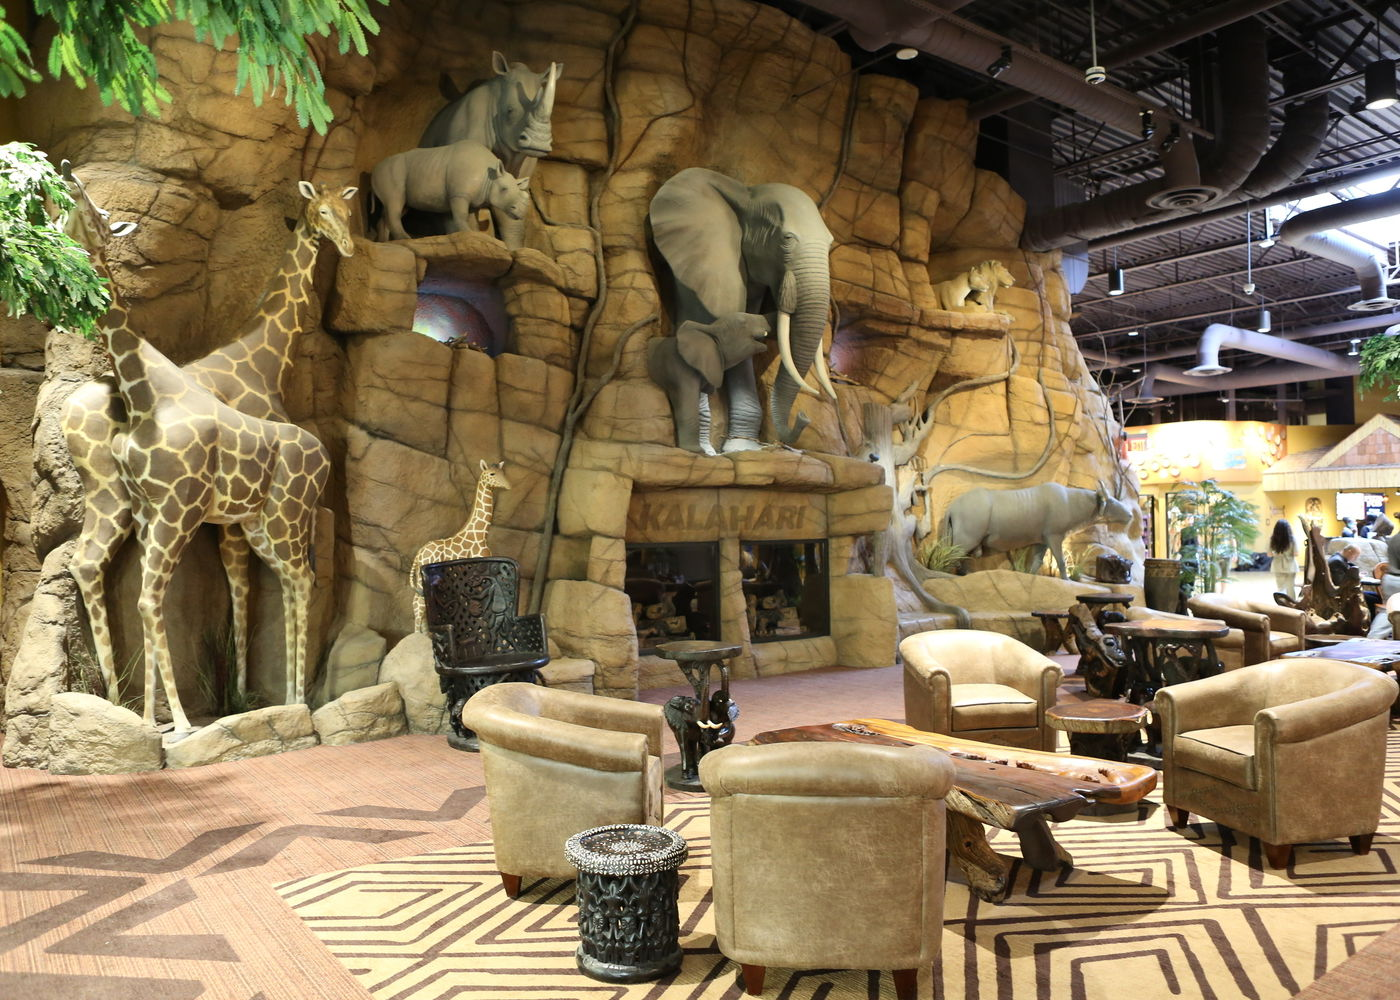 kalahari resorts and conventions | pocono manor, pa 18349